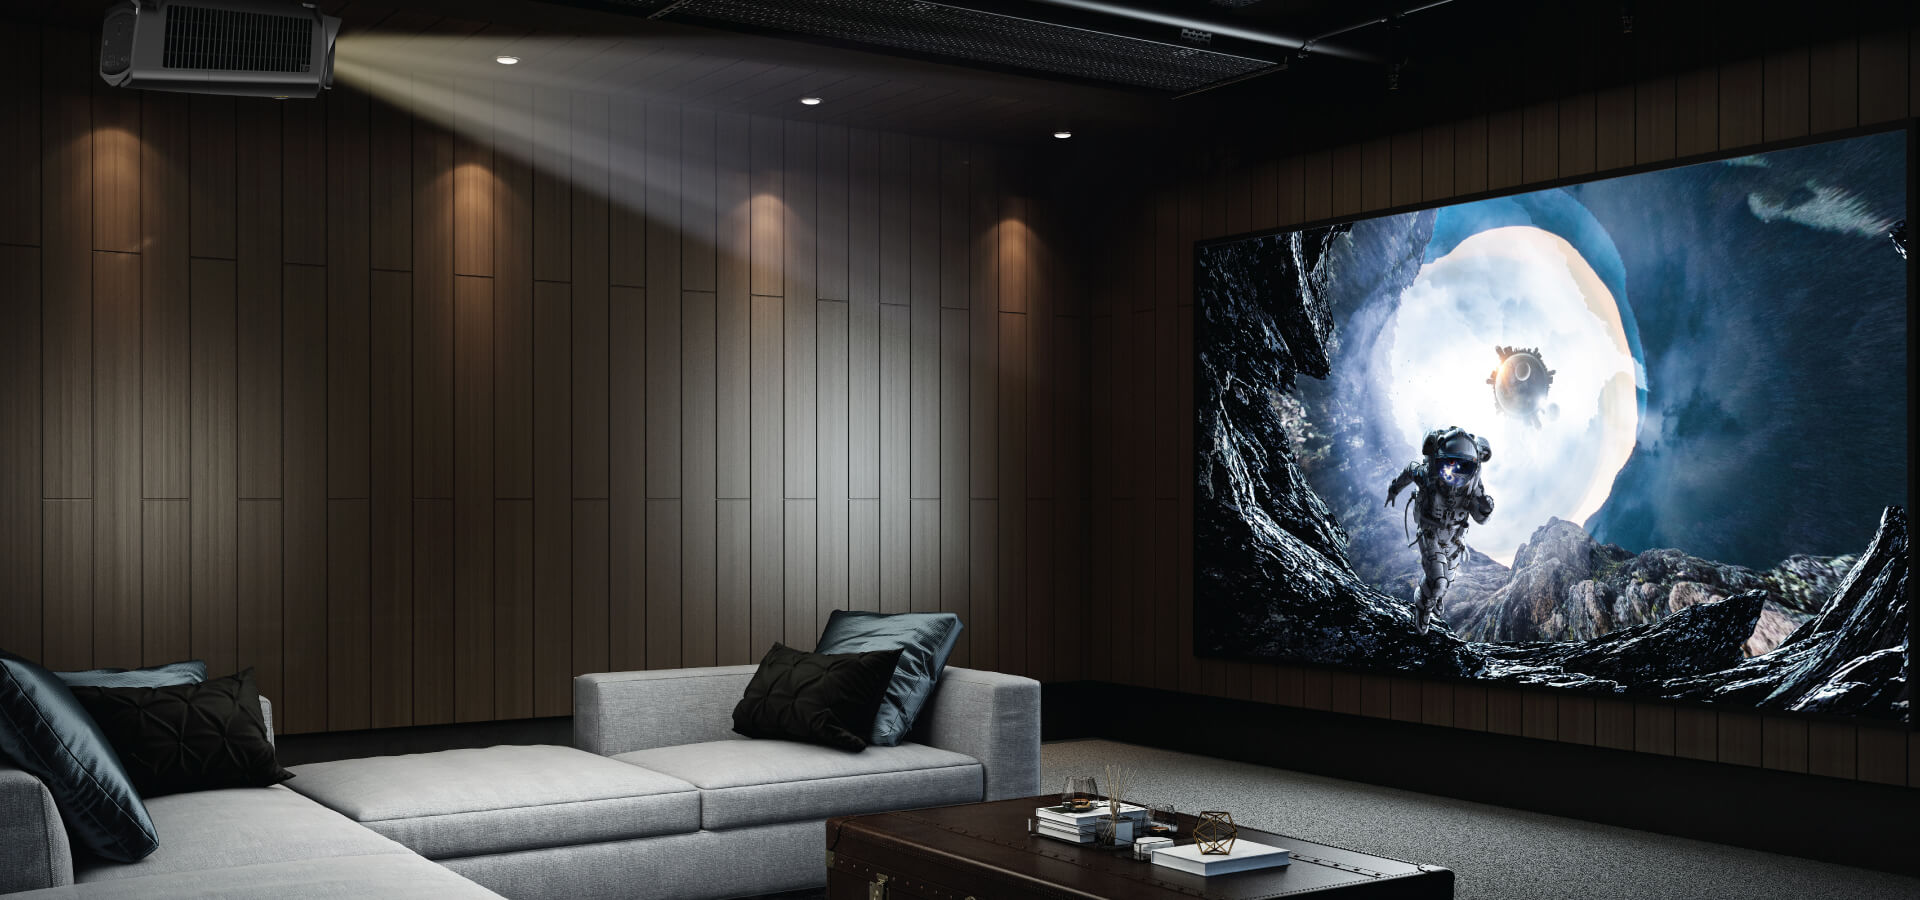 W2700 delivers the highest level of image accuracy to satisfy cinema fanatics' taste